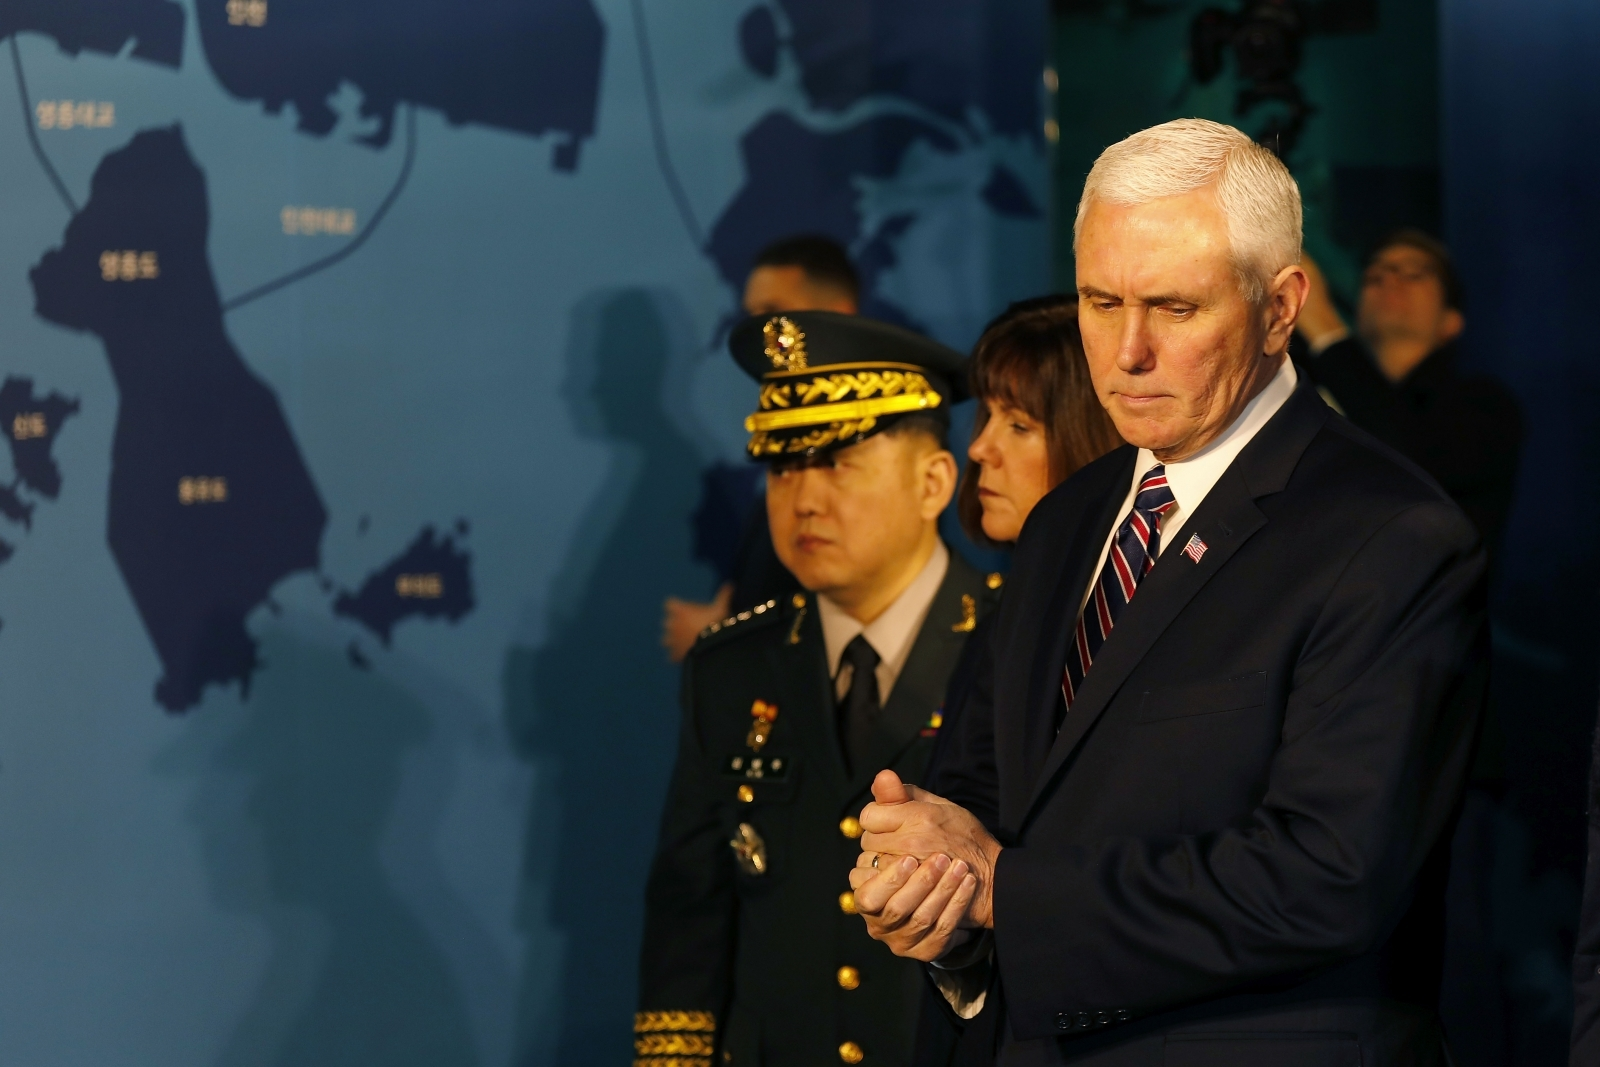 Amid Olympic thaw, Pence says allies united in isolating North Korea